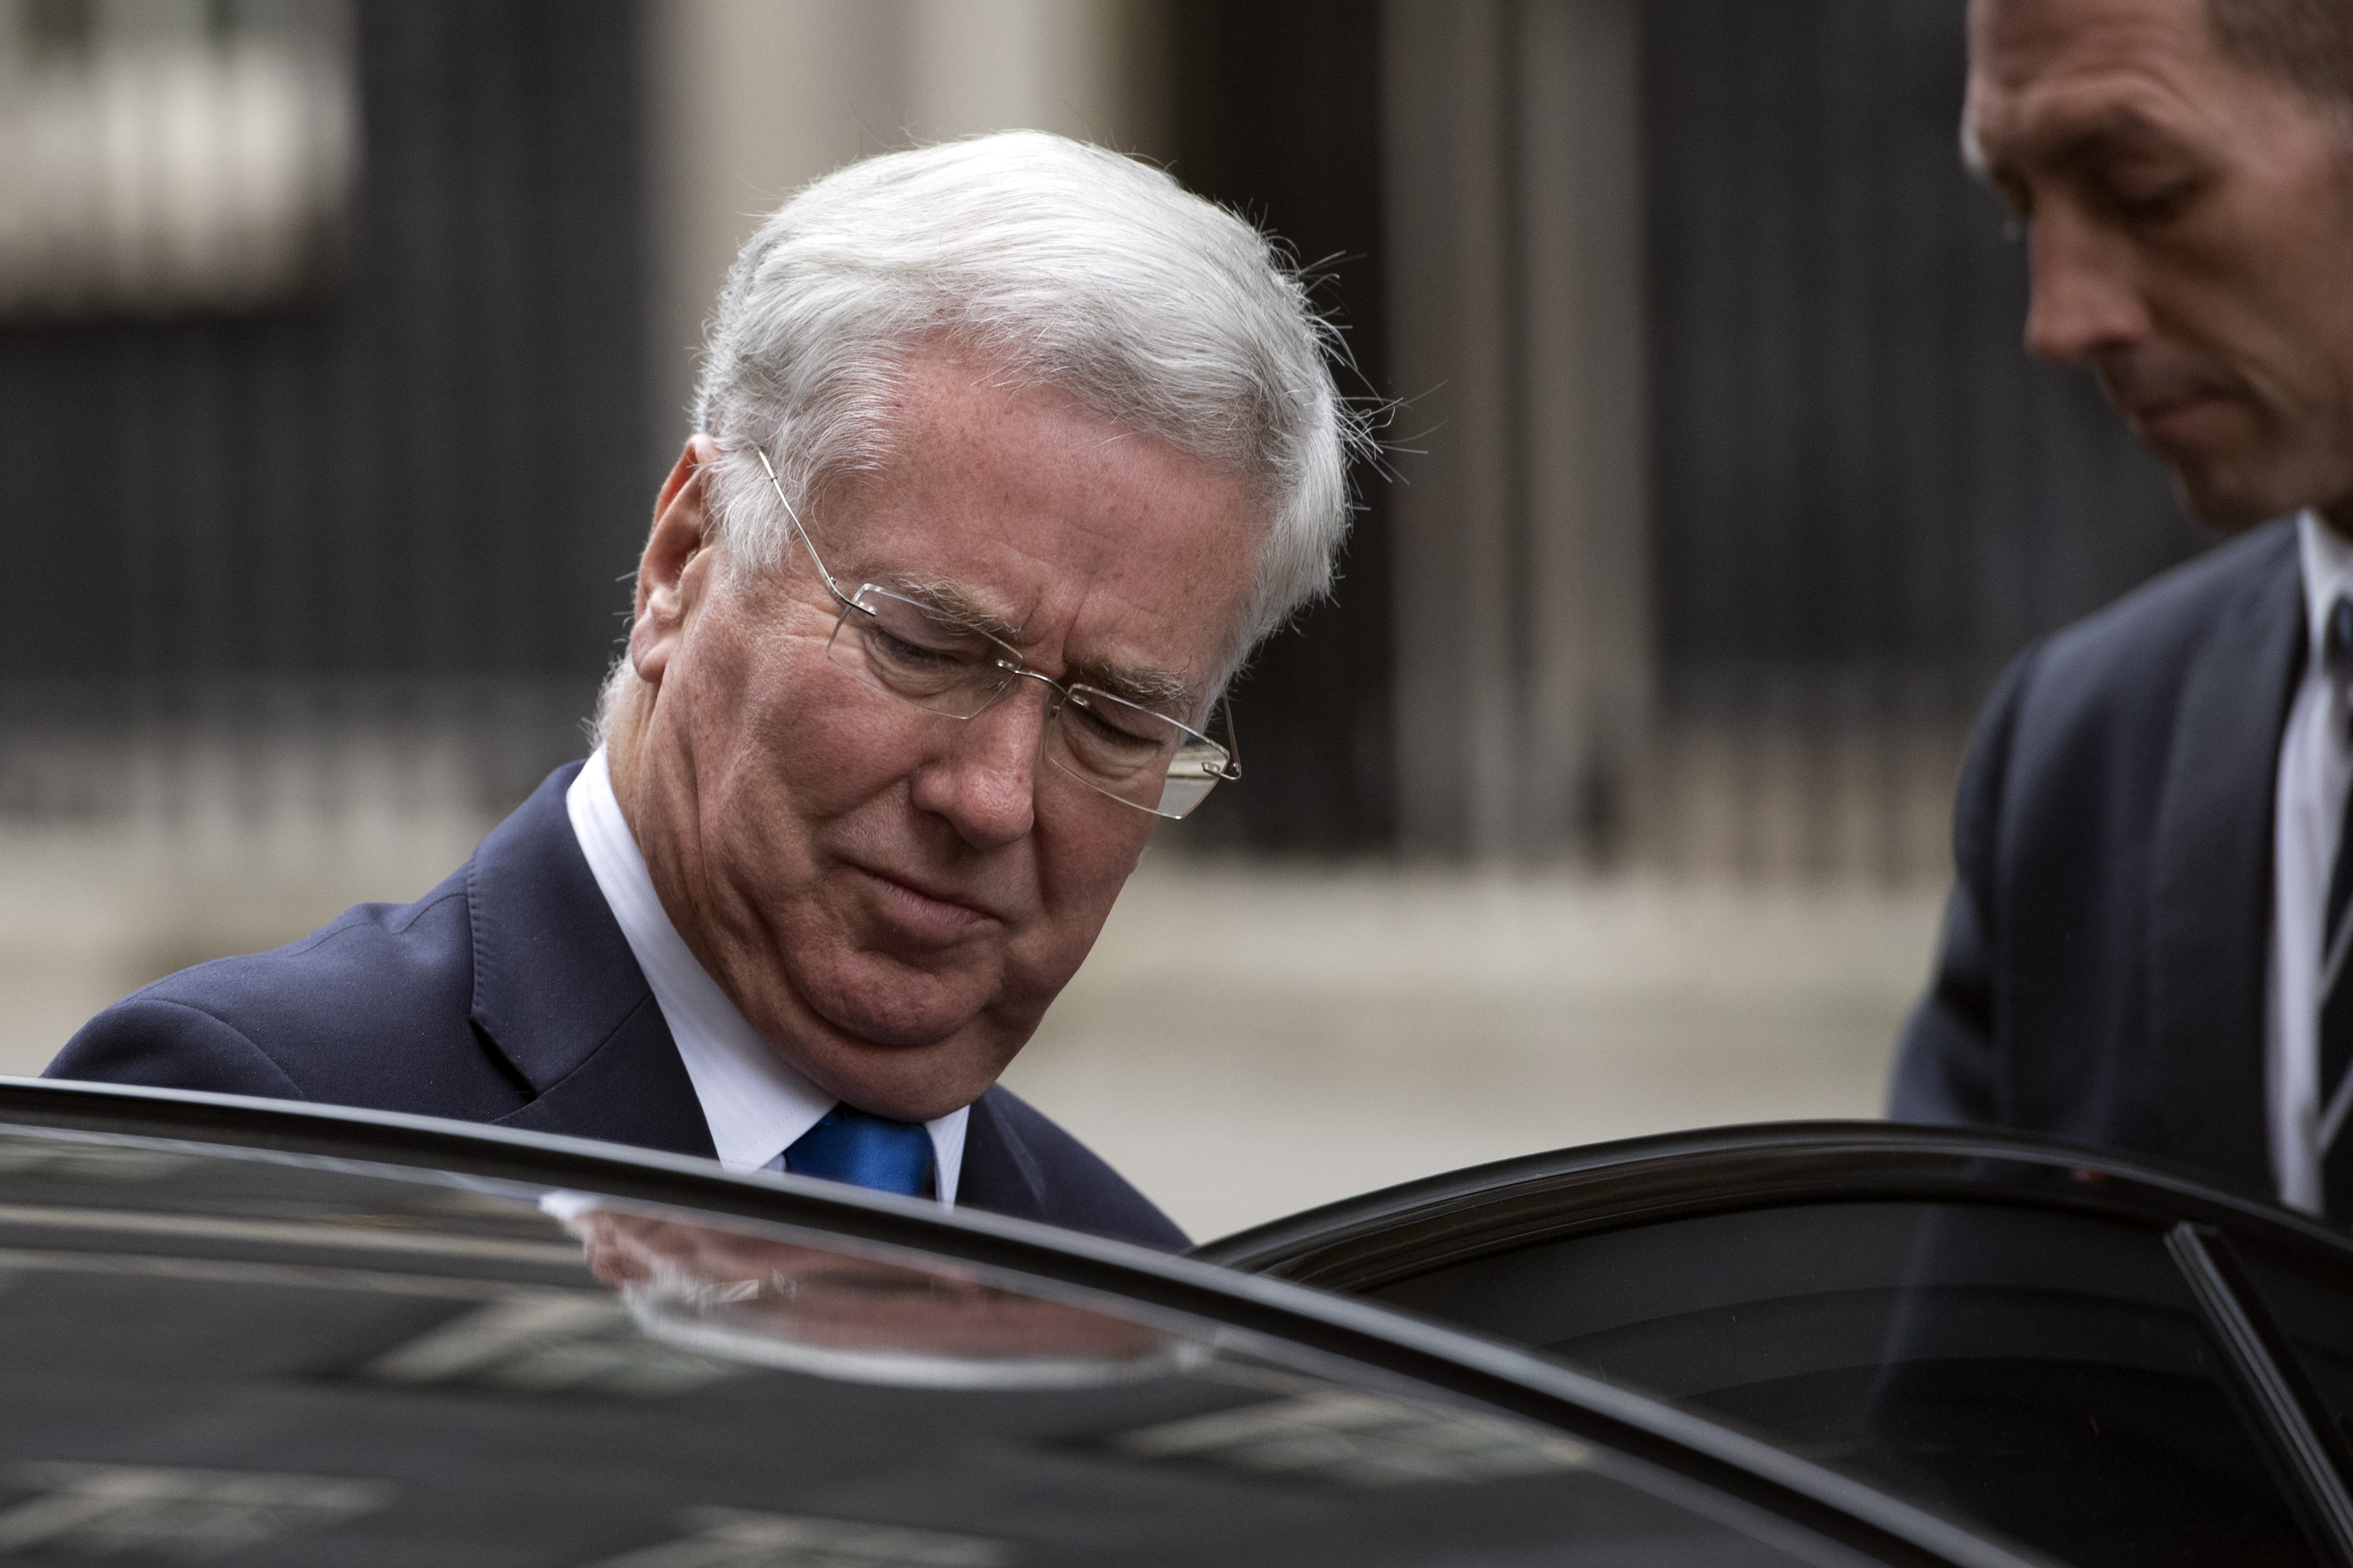 LONDON, ENGLAND - OCTOBER 31: Defence secretary Michael Fallon leaves after attending a cabinet meeting in Downing Street on October 31, 2017 in London, England. The Prime Minister is expected to discuss claims of sexual misconduct amongst members of parliament and Commons staff. (Photo by Carl Court/Getty Images)